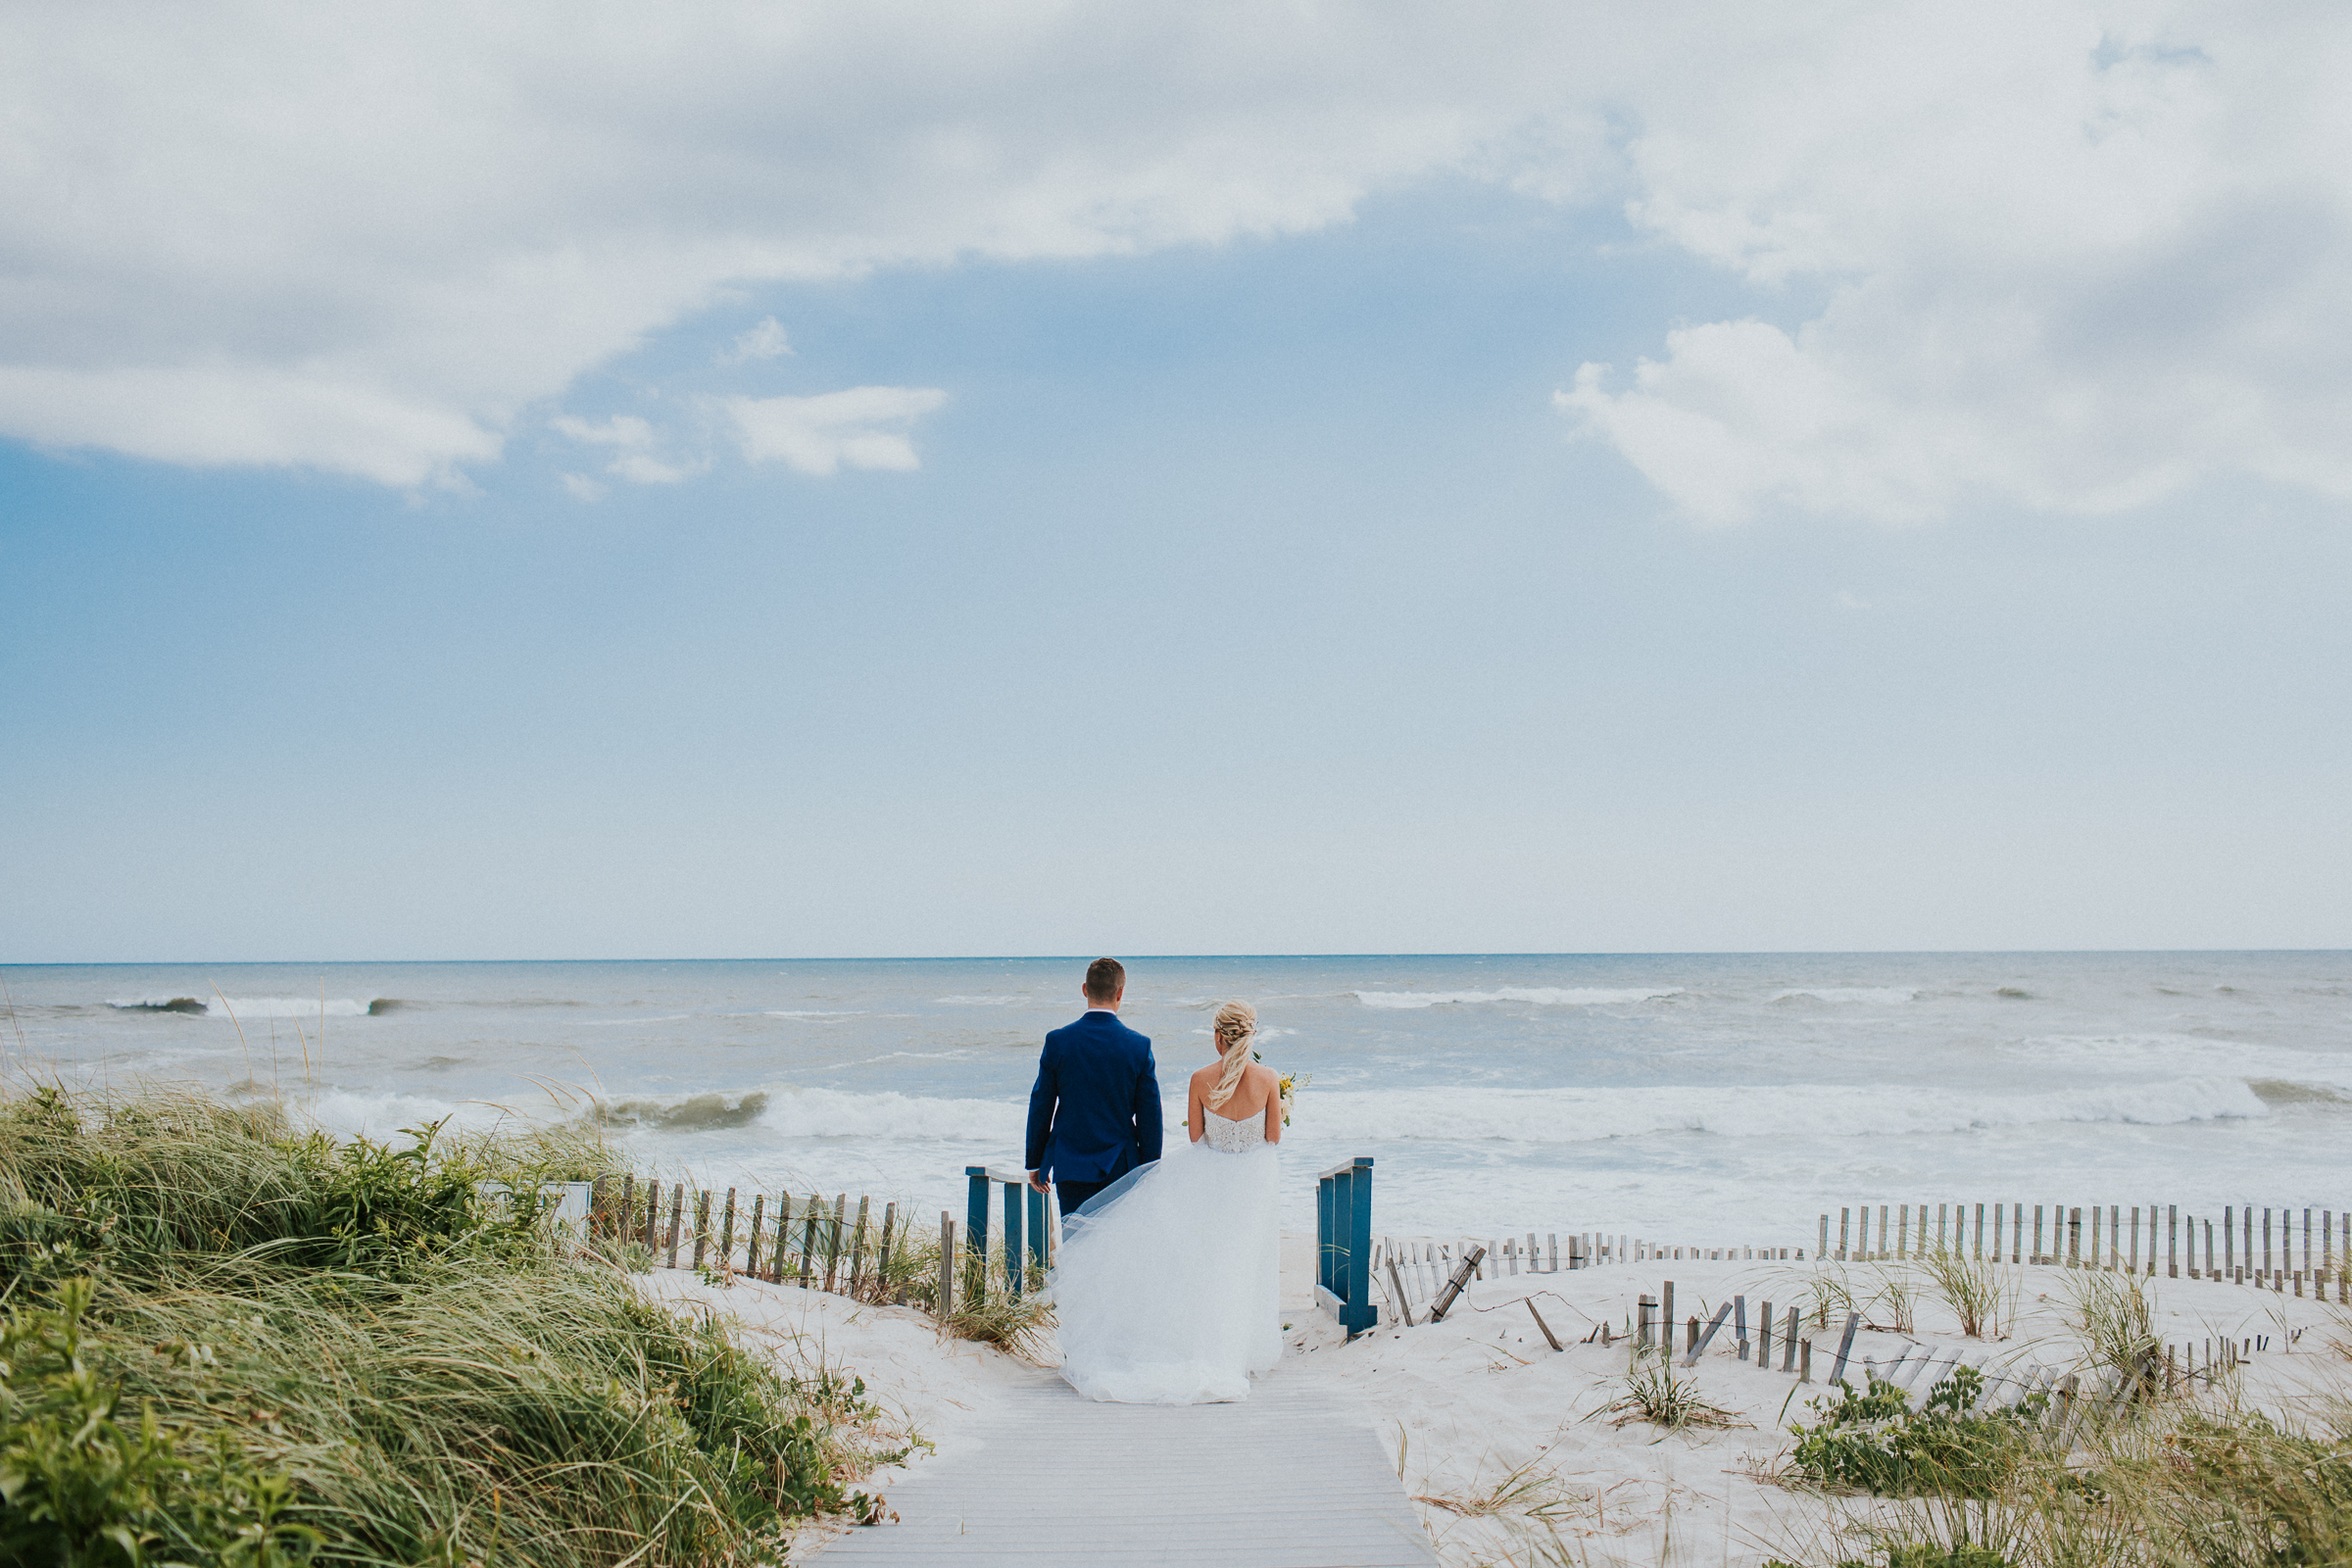 Oceanbleu-WestHamptons-Beach-Long-Island-Documentary-Wedding-Photographer-30.jpg